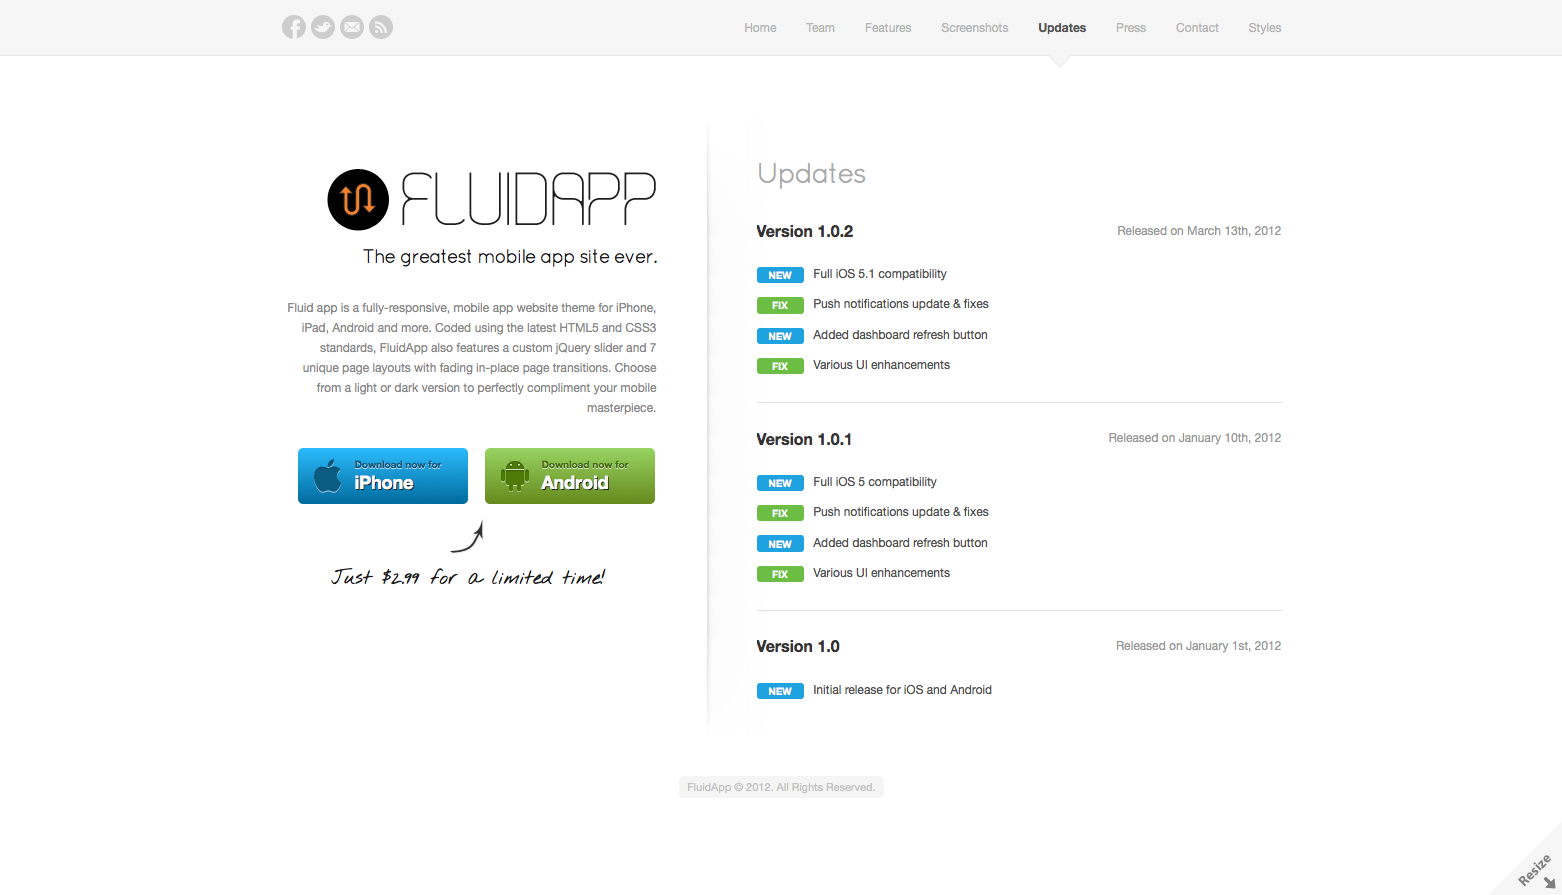 FluidApp - Responsive Mobile App Website Template - Updates - Keep your customers up to date by displaying a version release change log